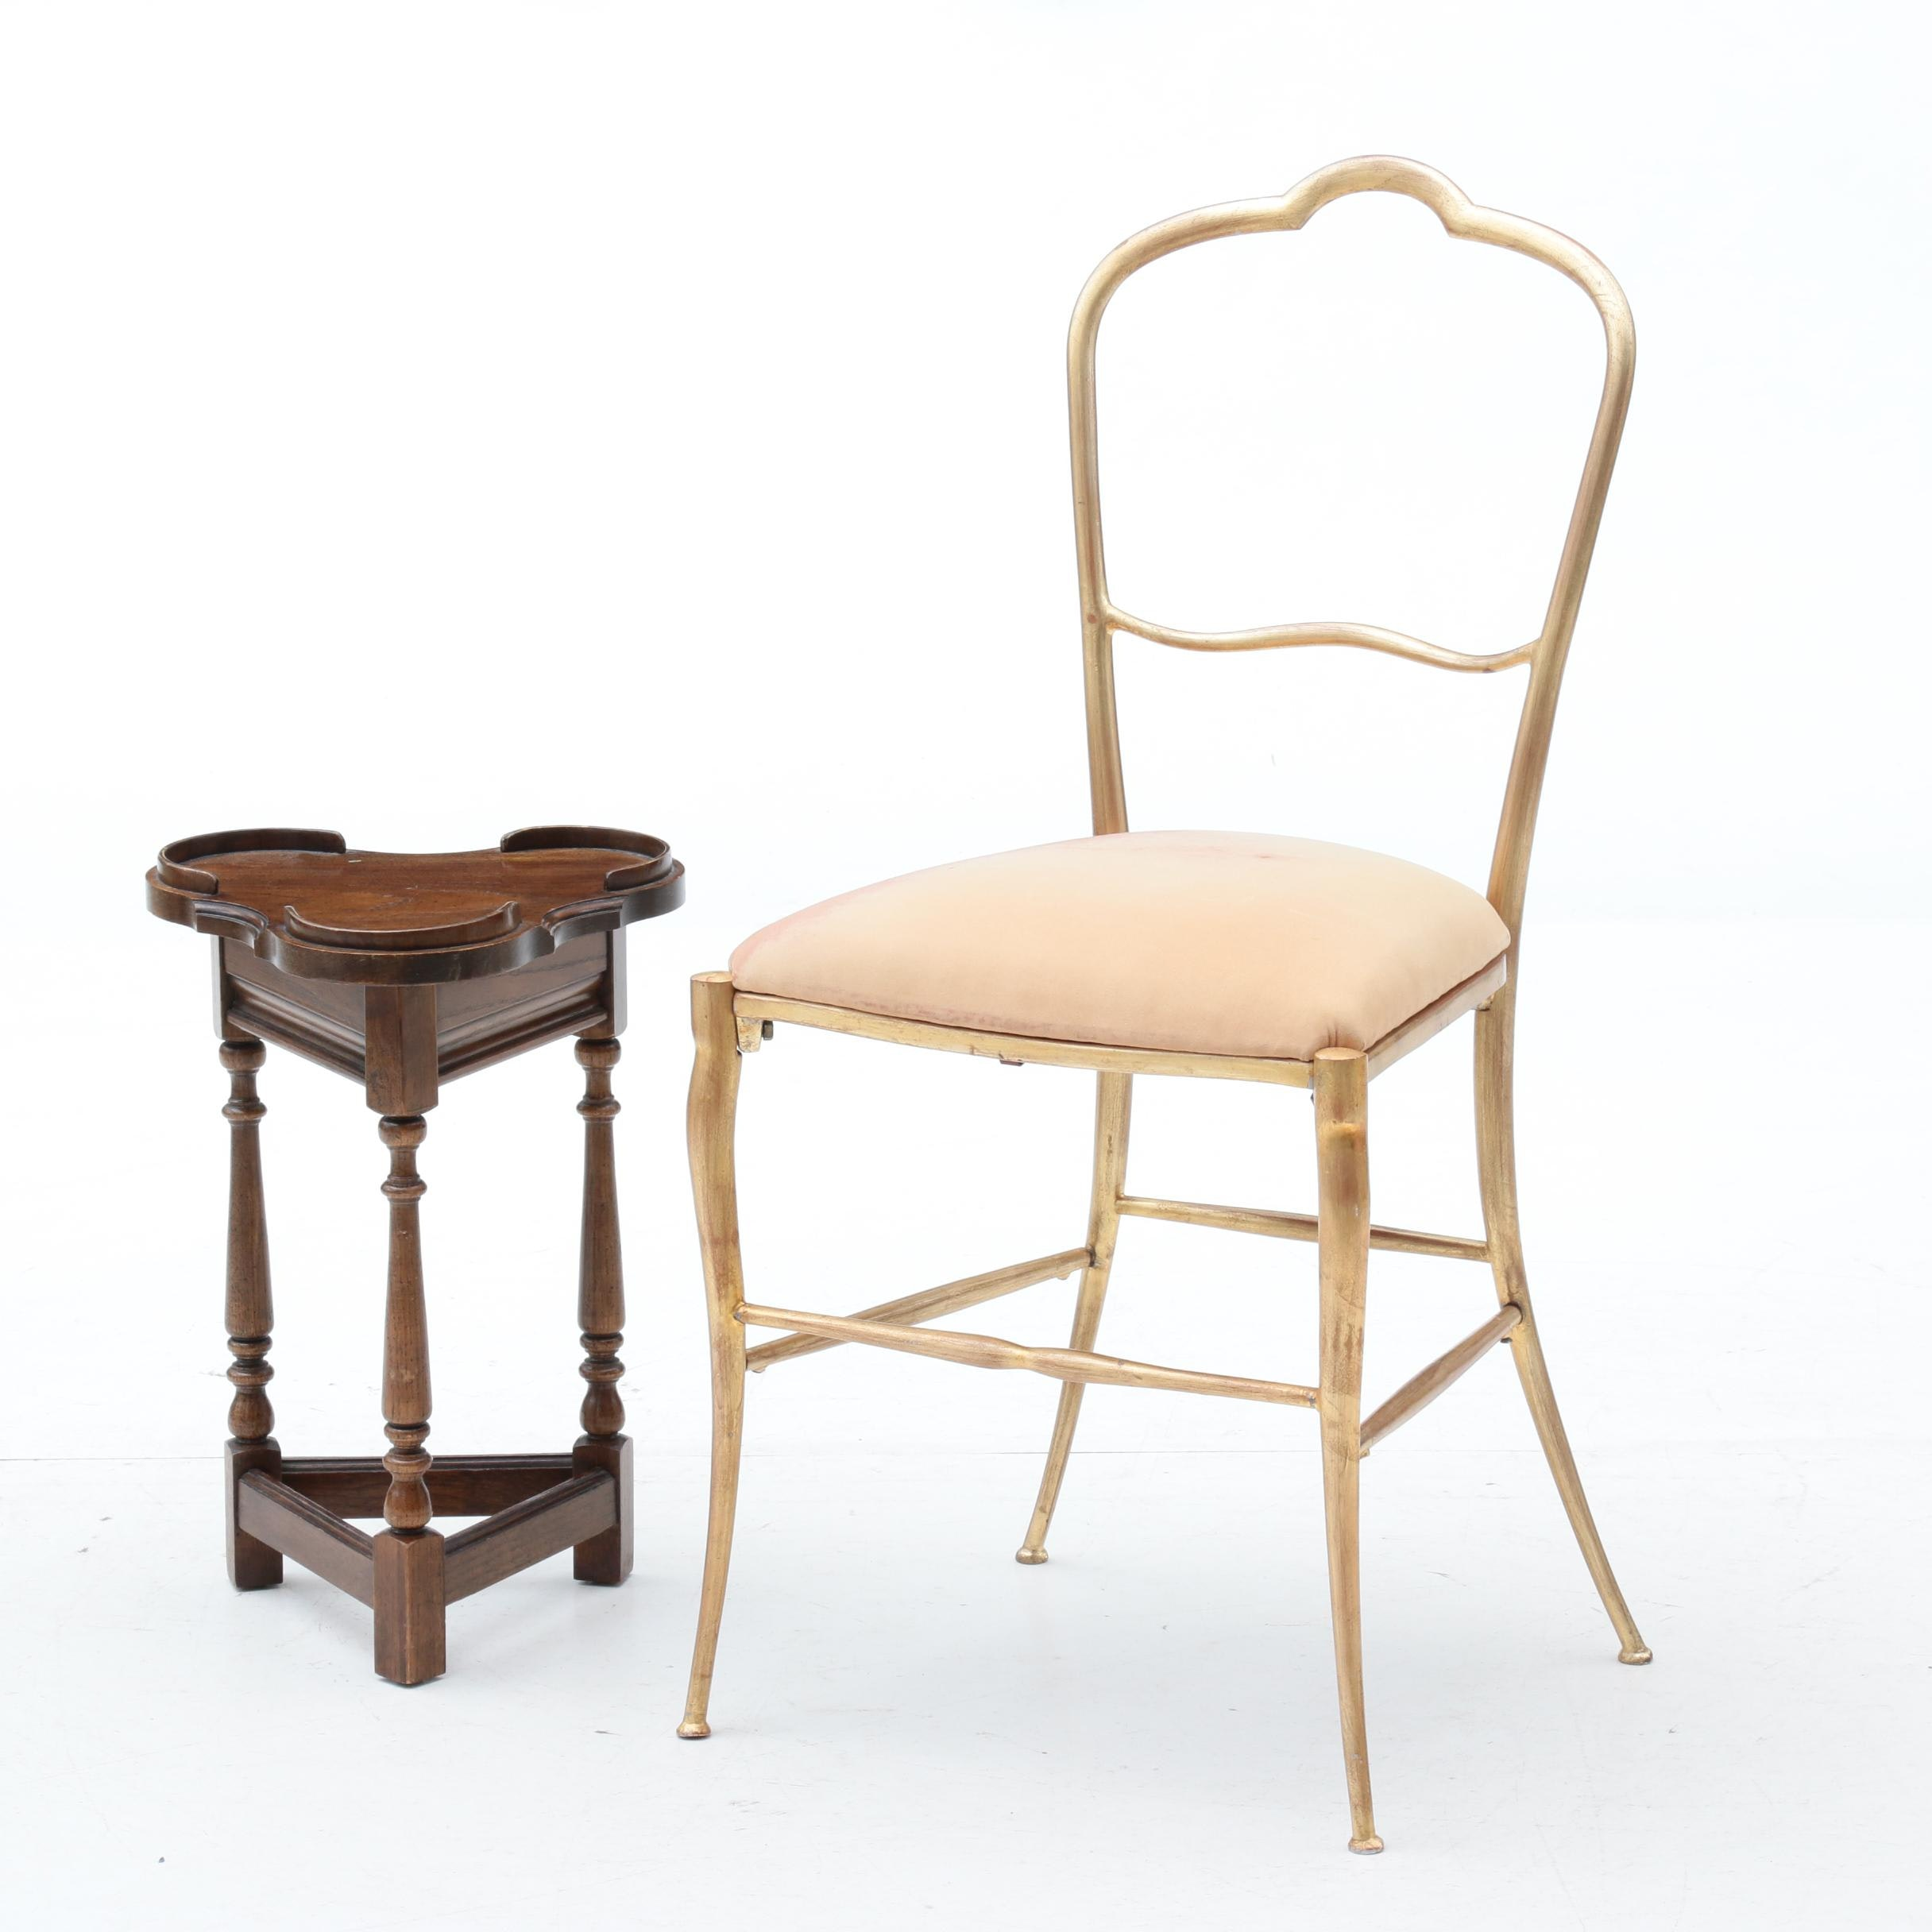 Gold Tone Painted Side Chair and Oak Trefoil Occasional Table, Late 20th Century